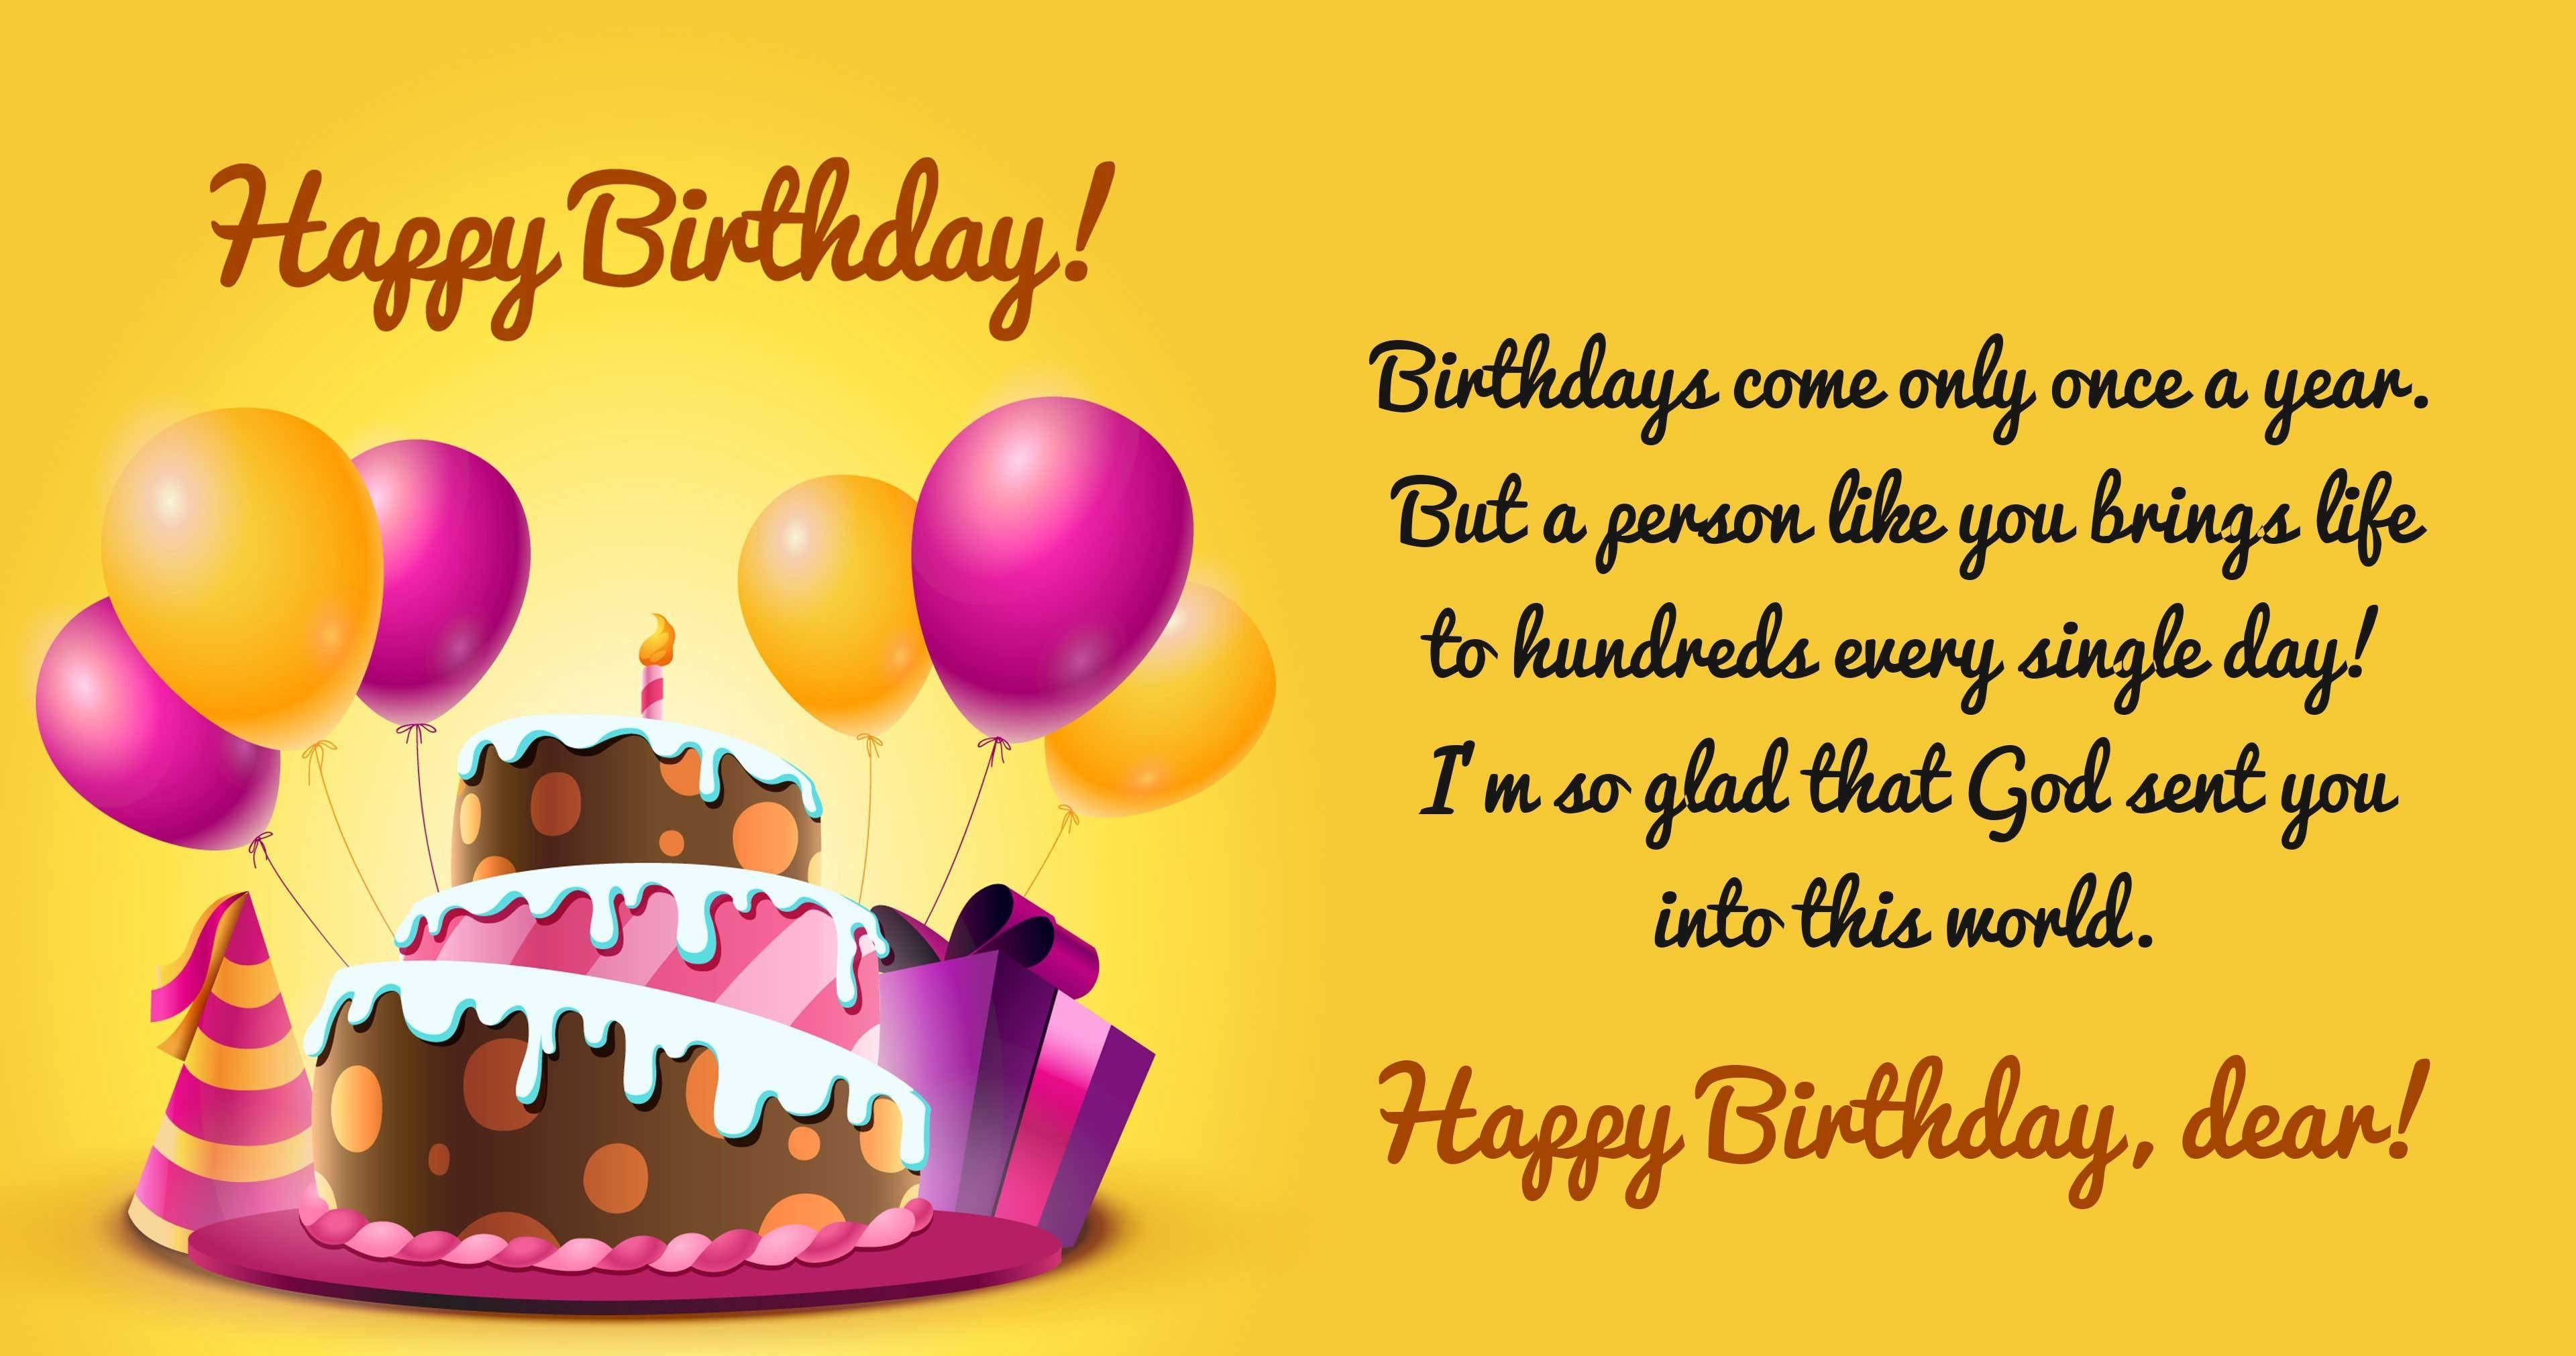 In This Post We Have To Shared Best Happy Birthday Cousin Quotes Wishes Bday Best Happy Birthday Quotes Happy Birthday Cousin Happy Birthday Picture Quotes